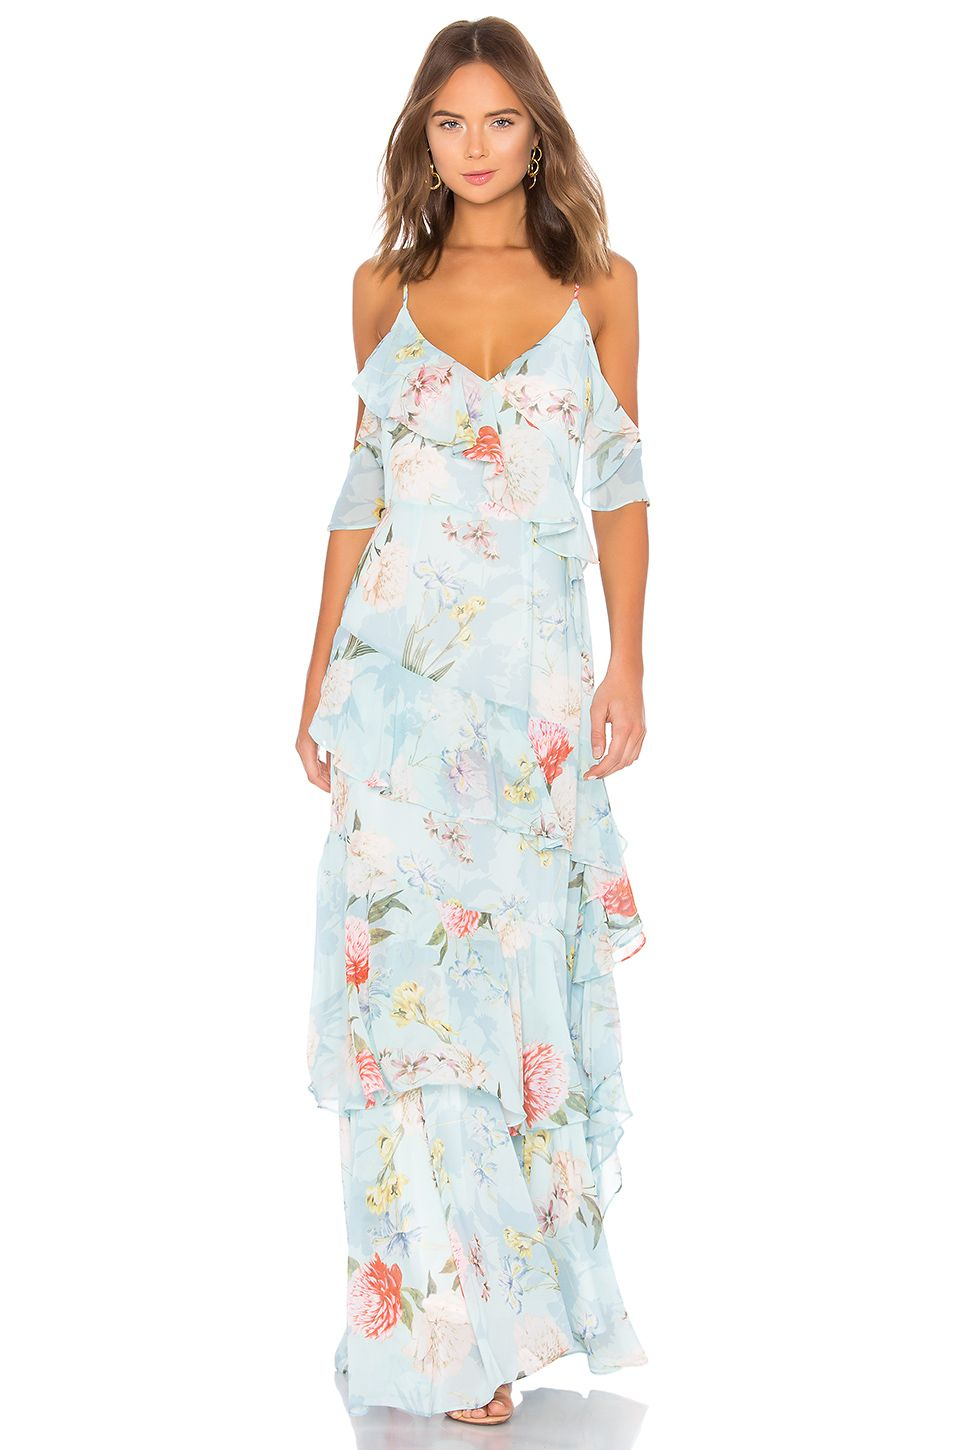 Yumi kim hearts desire maxi dress in forever yours jade revolve